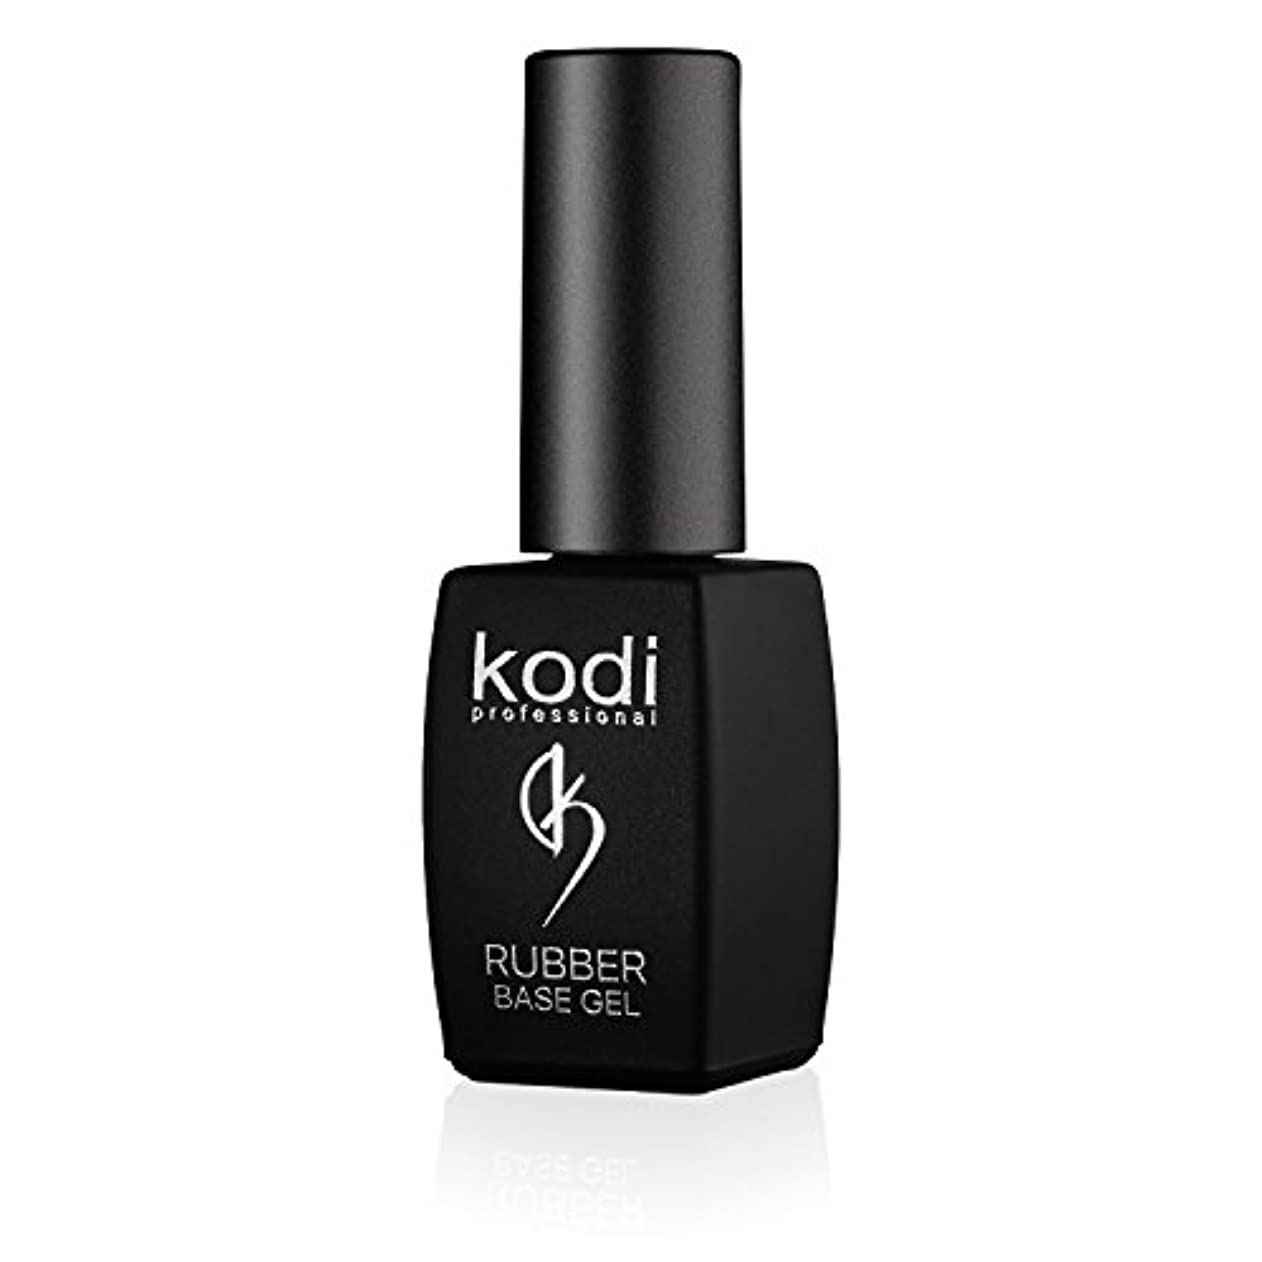 スタンド計り知れない折るProfessional Rubber Base Gel By Kodi | 8ml 0.27 oz | Soak Off, Polish Fingernails Coat Gel | For Long Lasting...